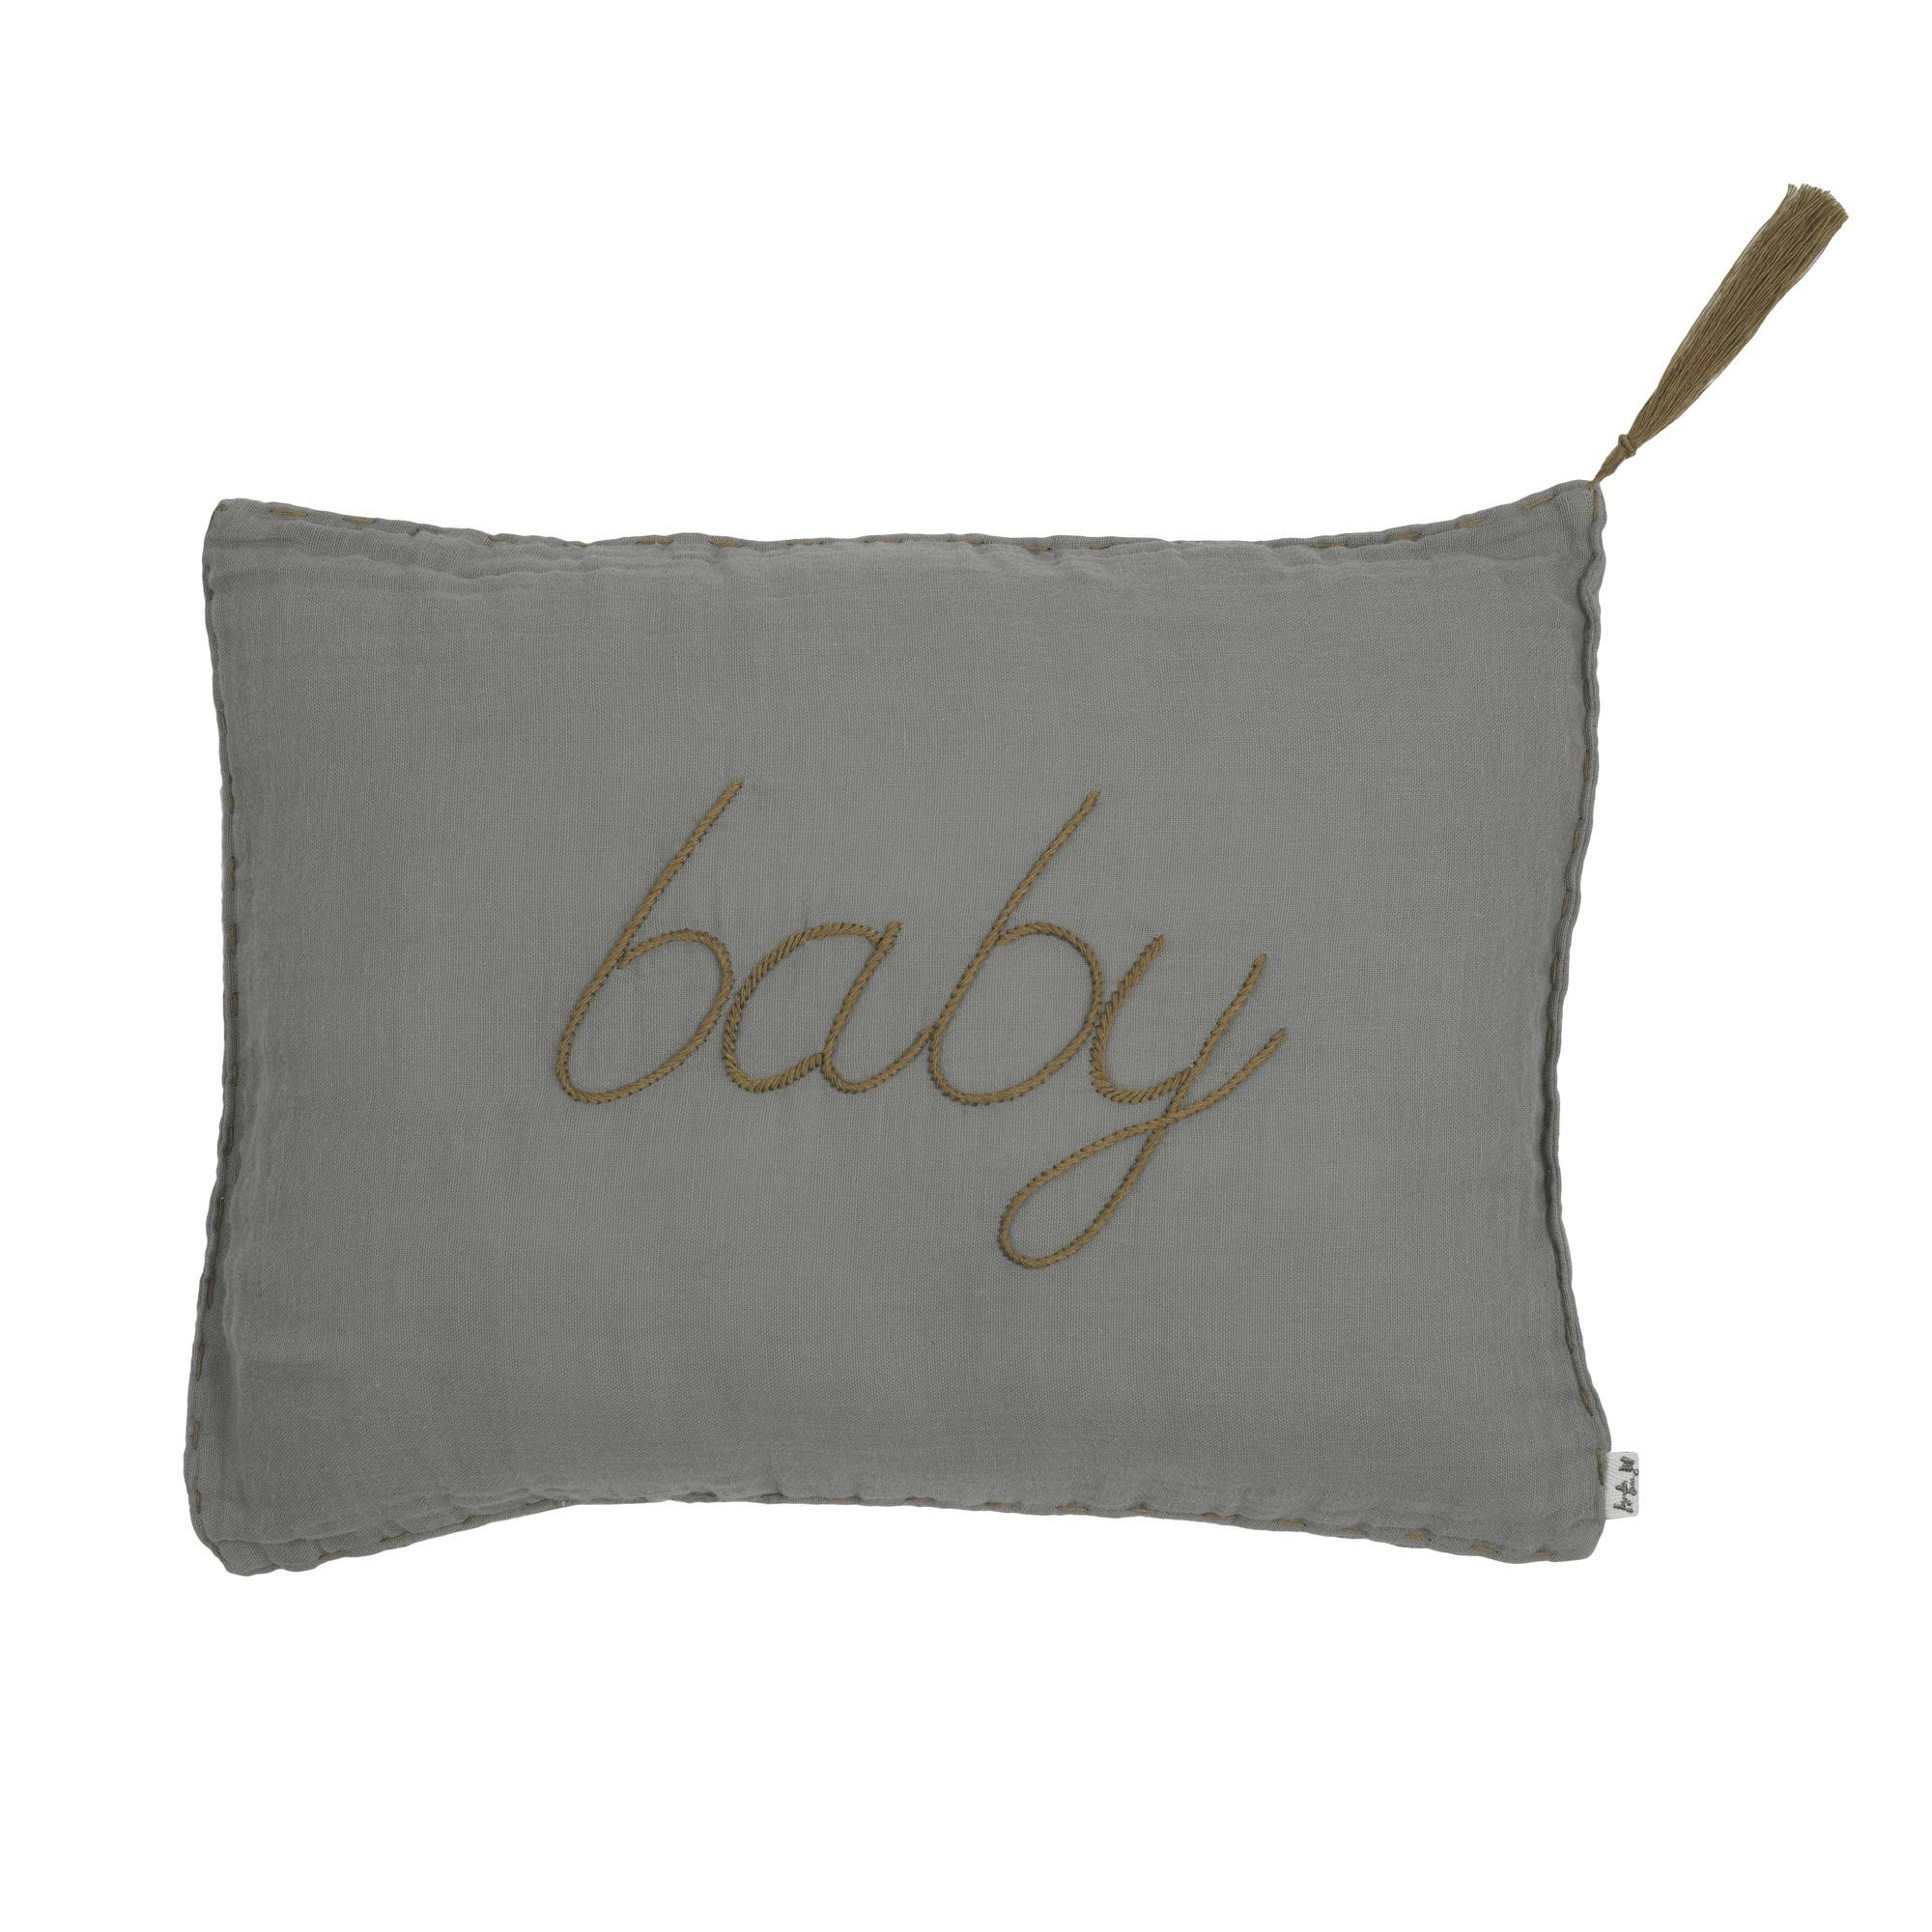 Poduszka Cushion Message pastel silver grey szara